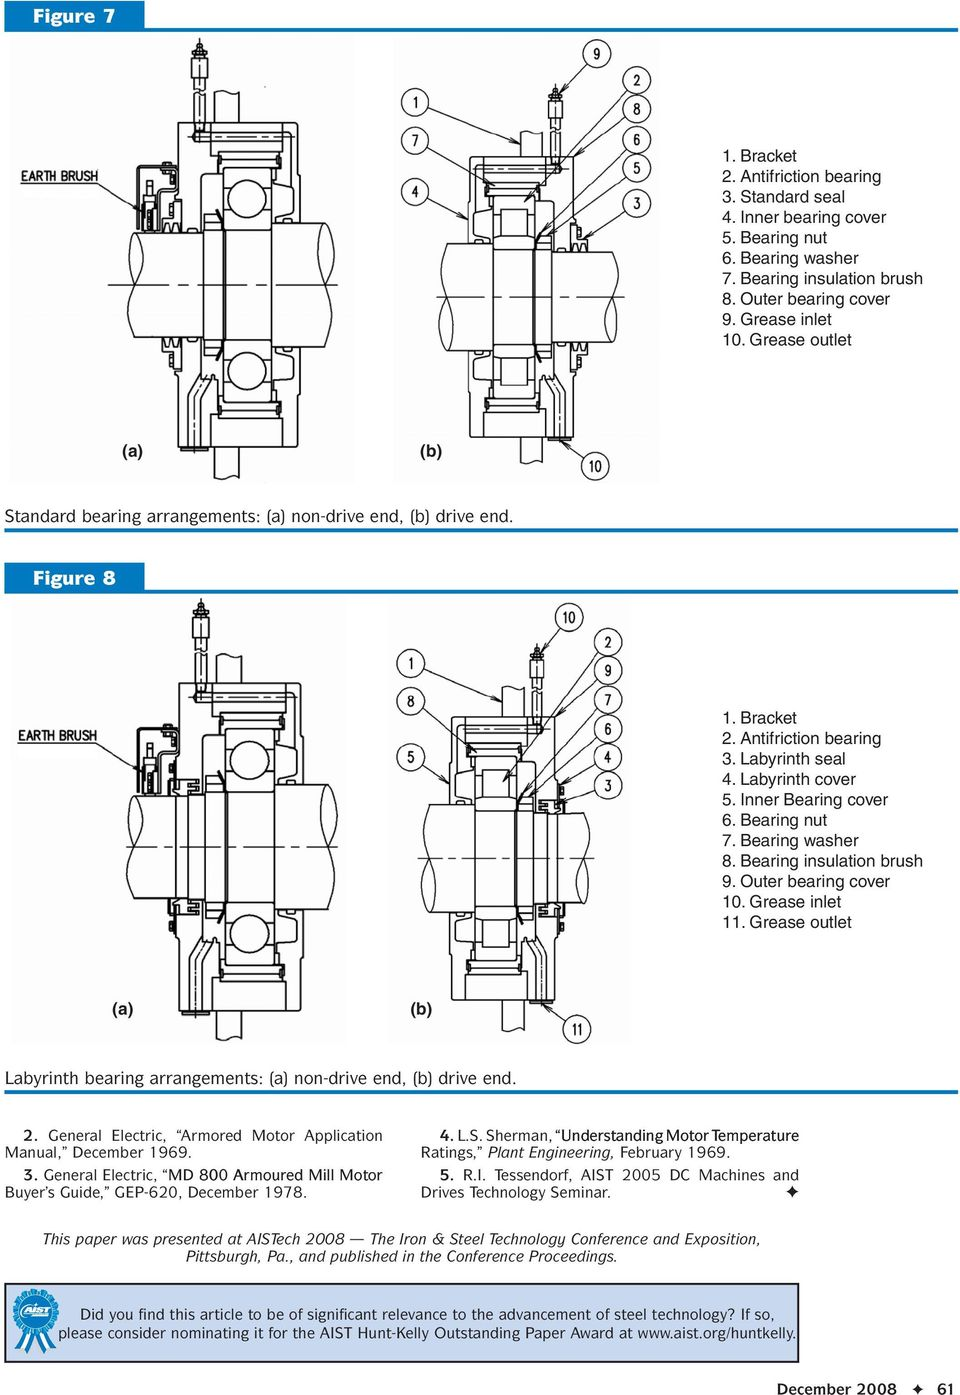 Ac Replacement For Dc Mill Duty Motors Pdf General Electric Shunt Motor Wiring Diagram Bearing Nut 7 Washer 8 Insulation Brush 9 Outer Cover